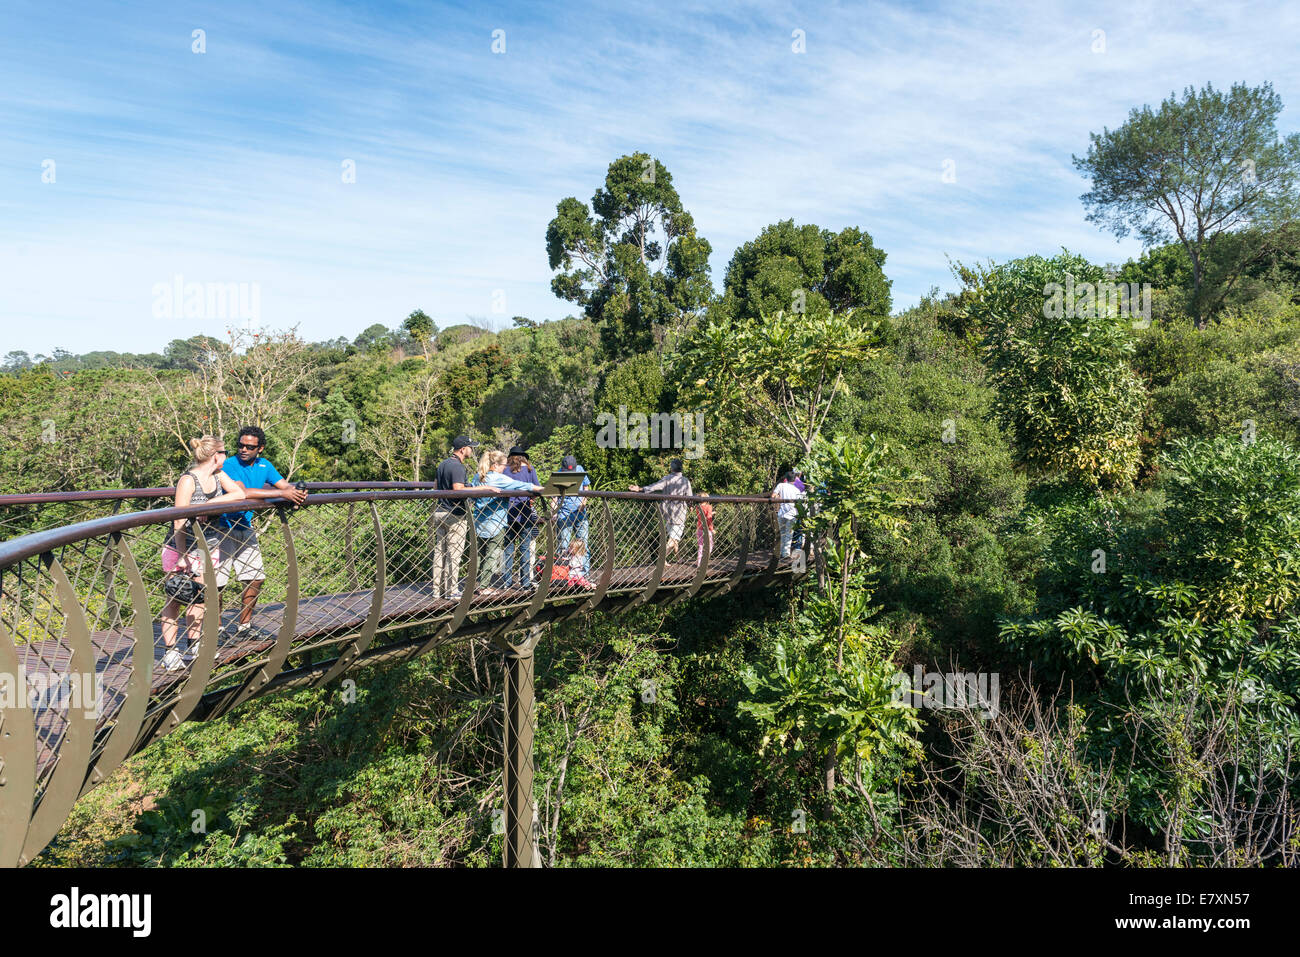 Visitors on the Centenary Tree Canopy Walkway Kirstenbosch Botanical Garden, Cape Town, South Africa - Stock Image